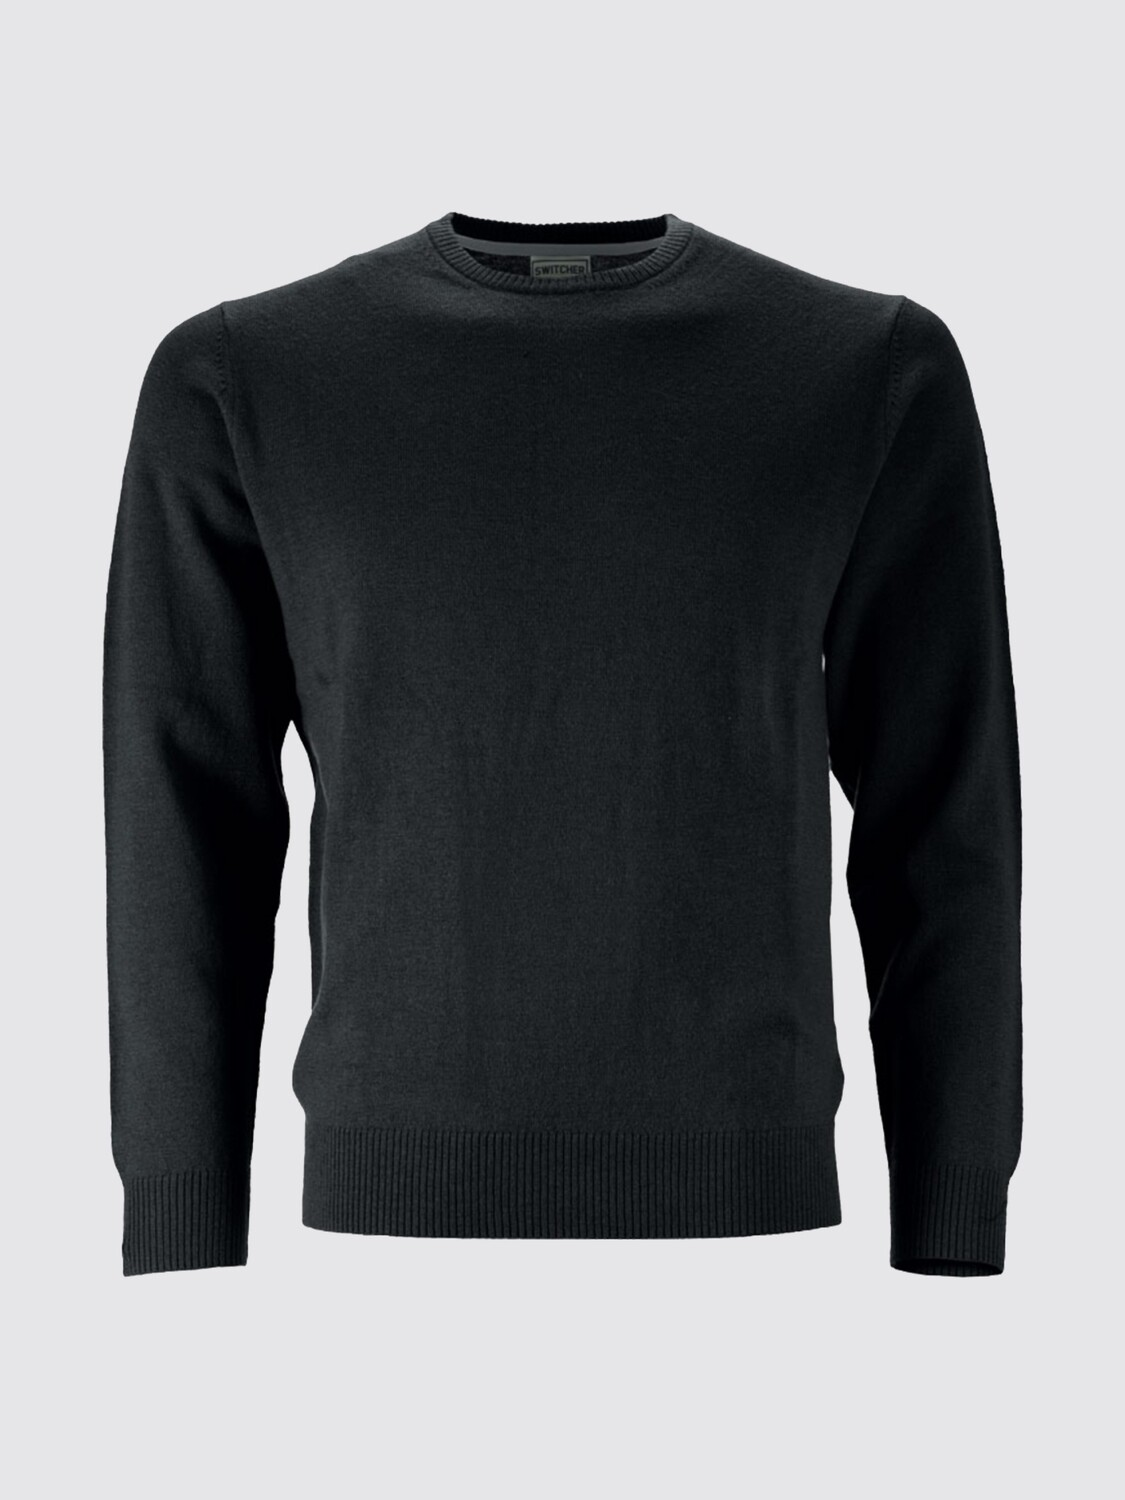 ​Switcher roundneck knitted sweater